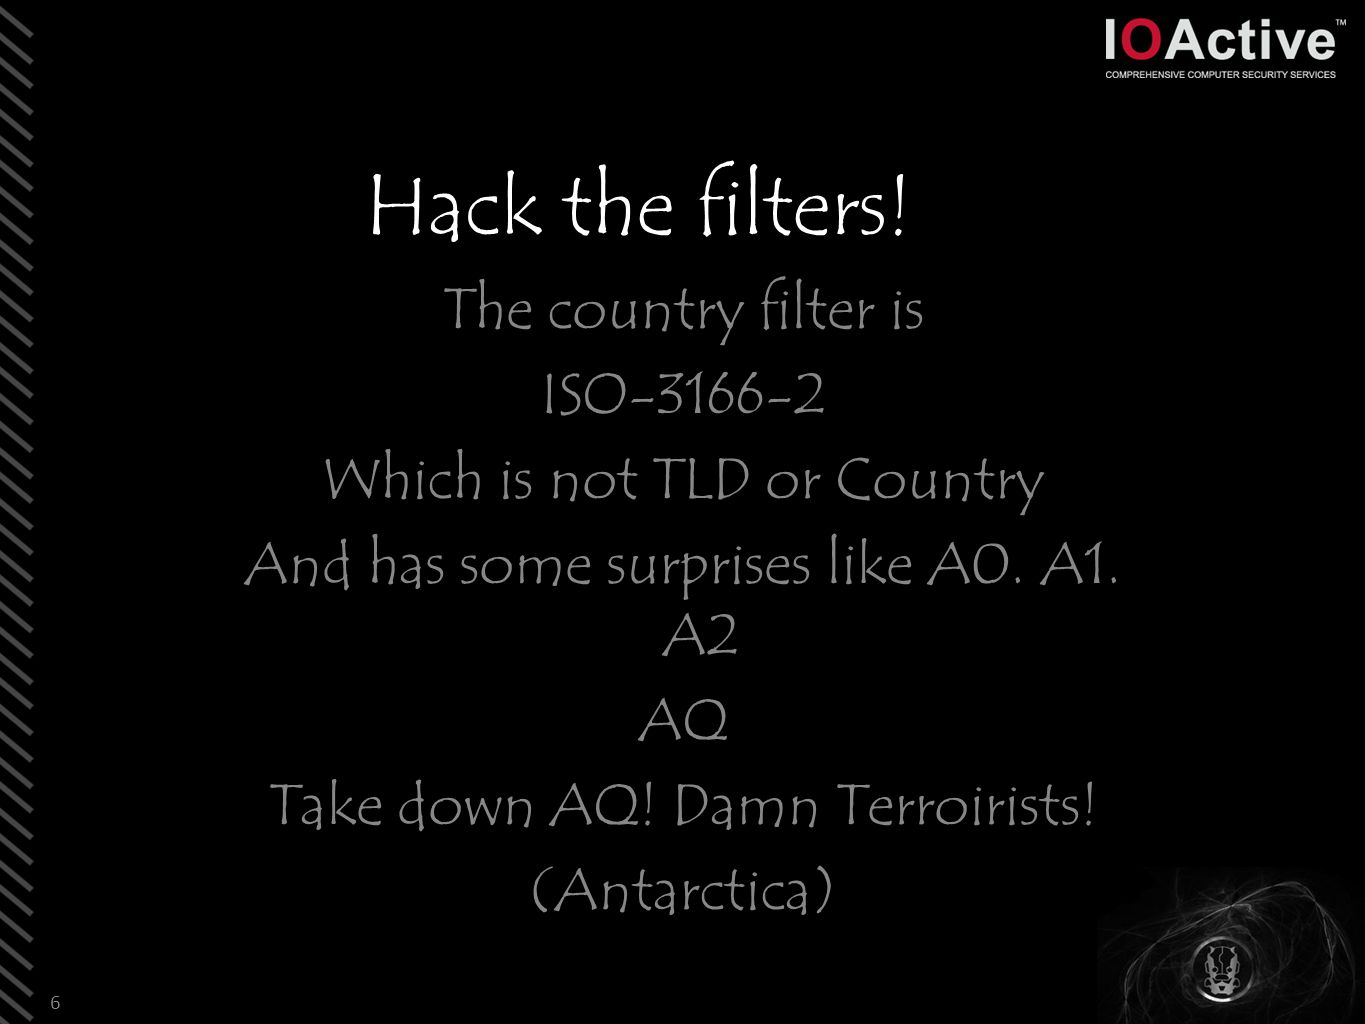 Hack the filters! The country filter is ISO-3166-2 Which is not TLD or Country And has some surprises like A0. A1. A2 AQ Take down AQ! Damn Terroirist